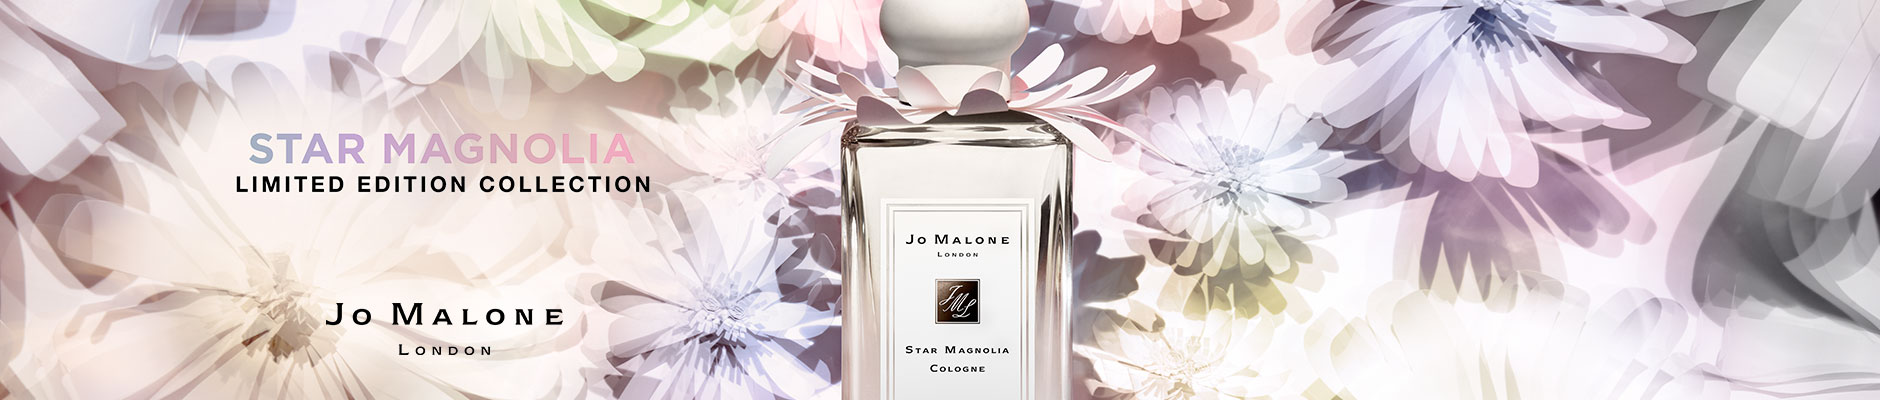 Star Magnolia: Limited Edition Collection - Jo Malone London